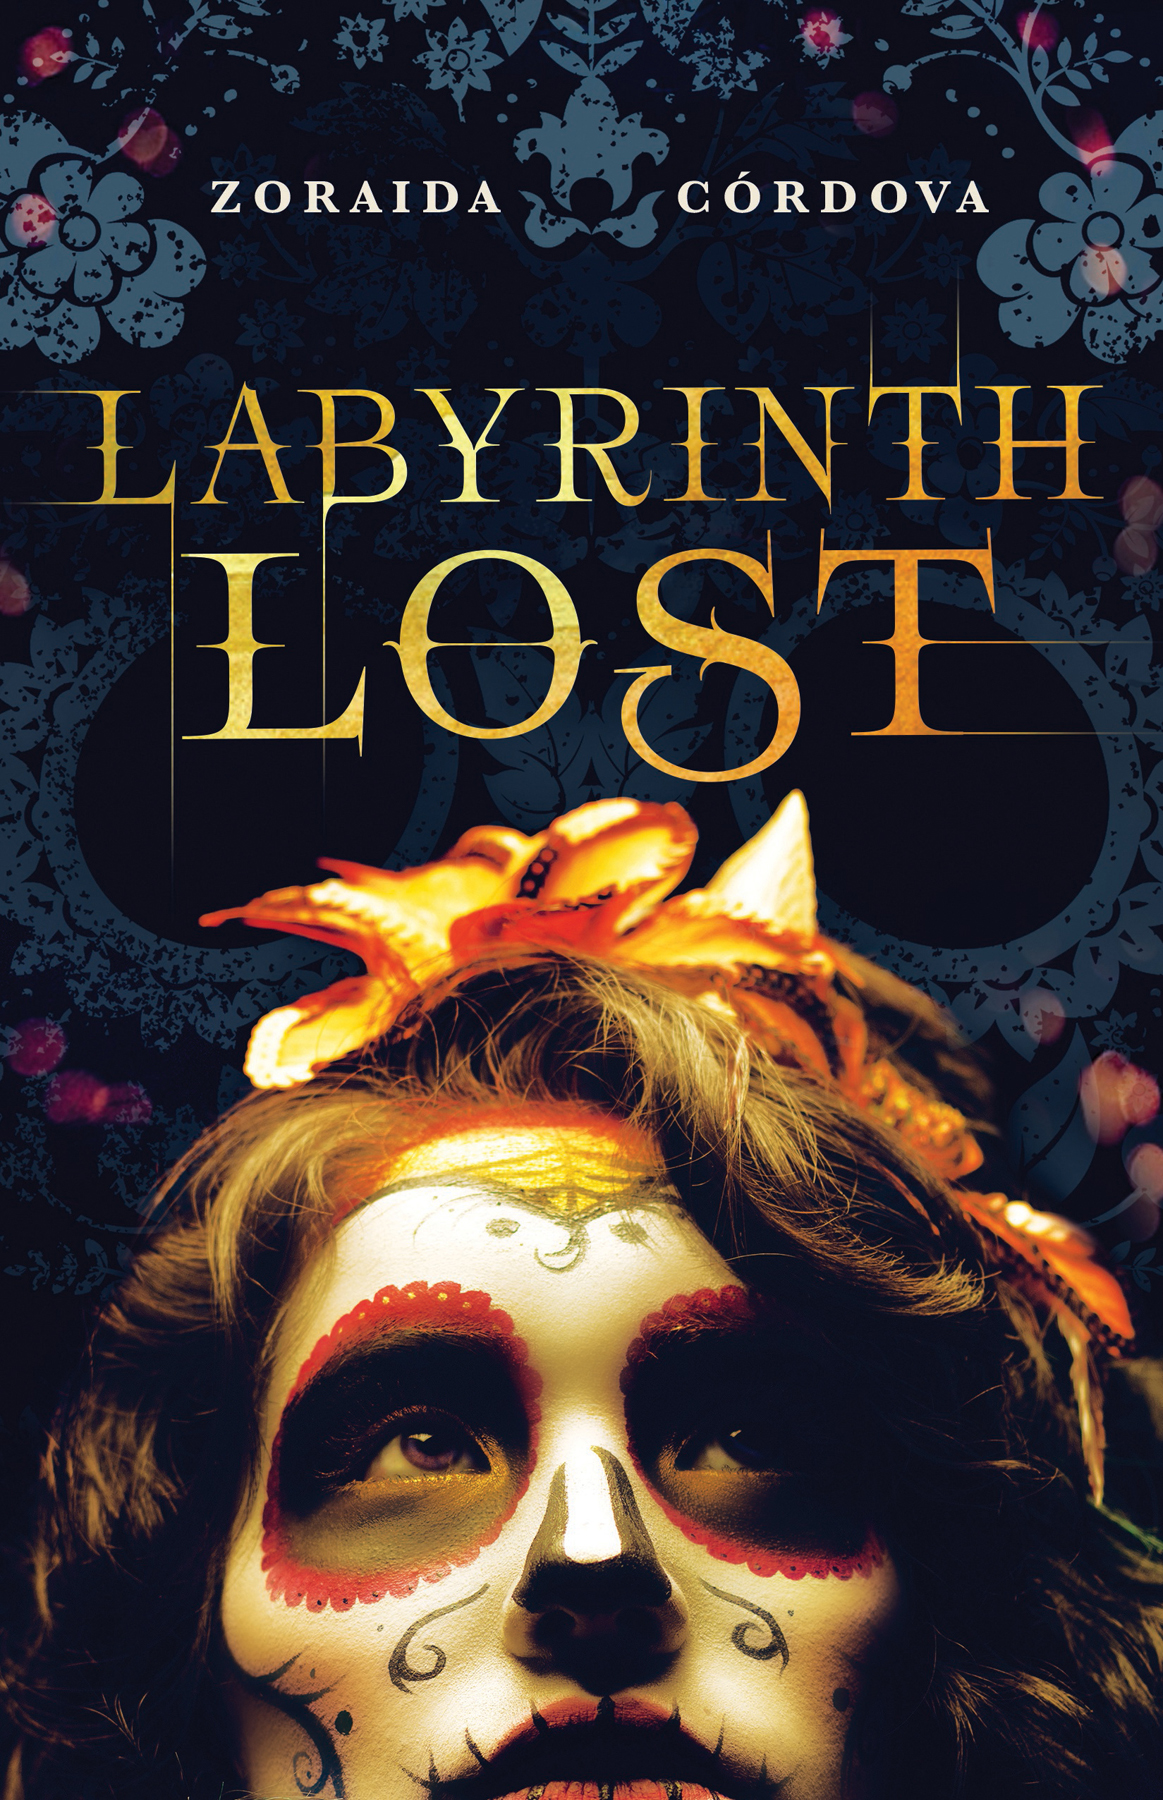 Labyrinth Lost (Brooklyn Brujas, #1) by Zoraida Córdova